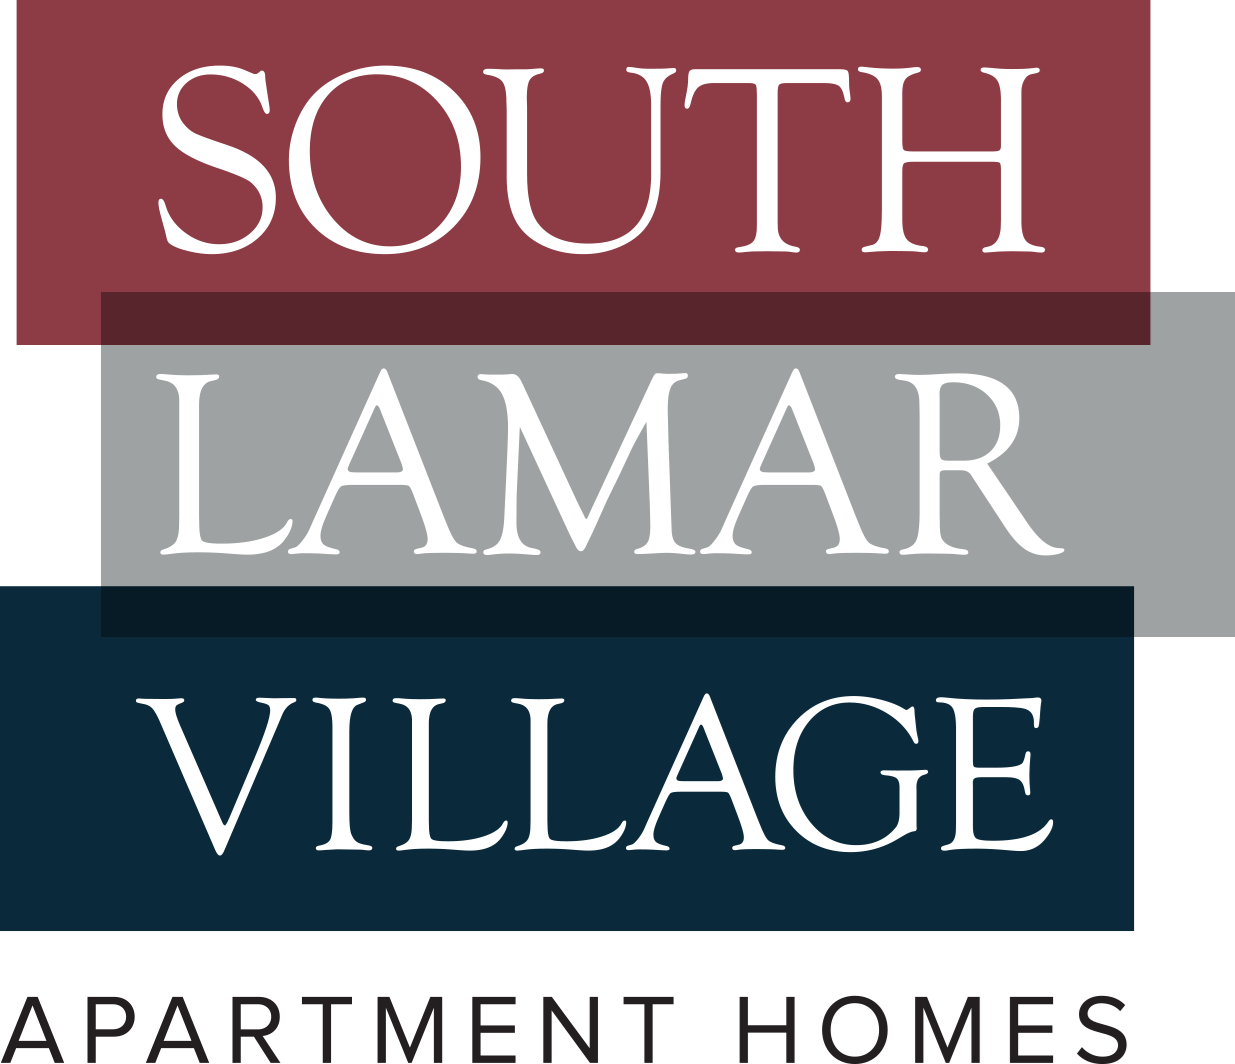 South Lamar Village Apartments Austin